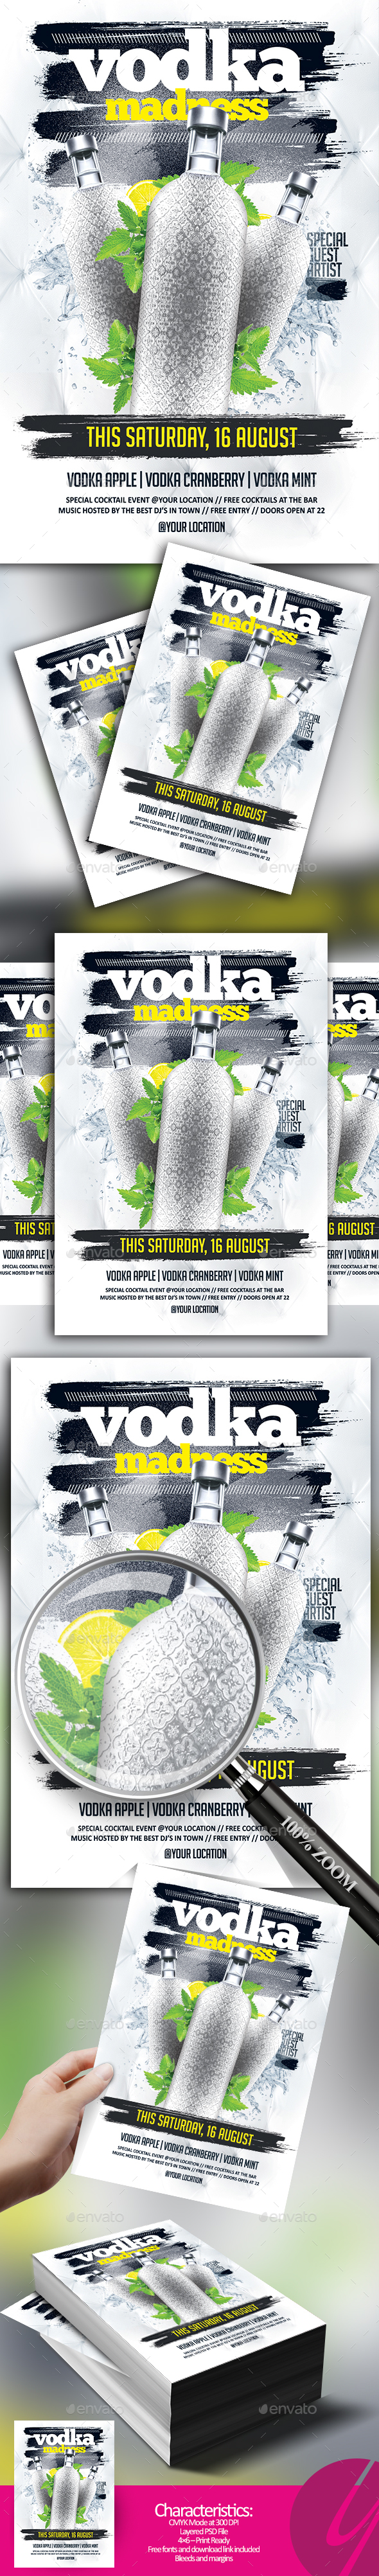 Vodka Madness Flyer - Clubs & Parties Events